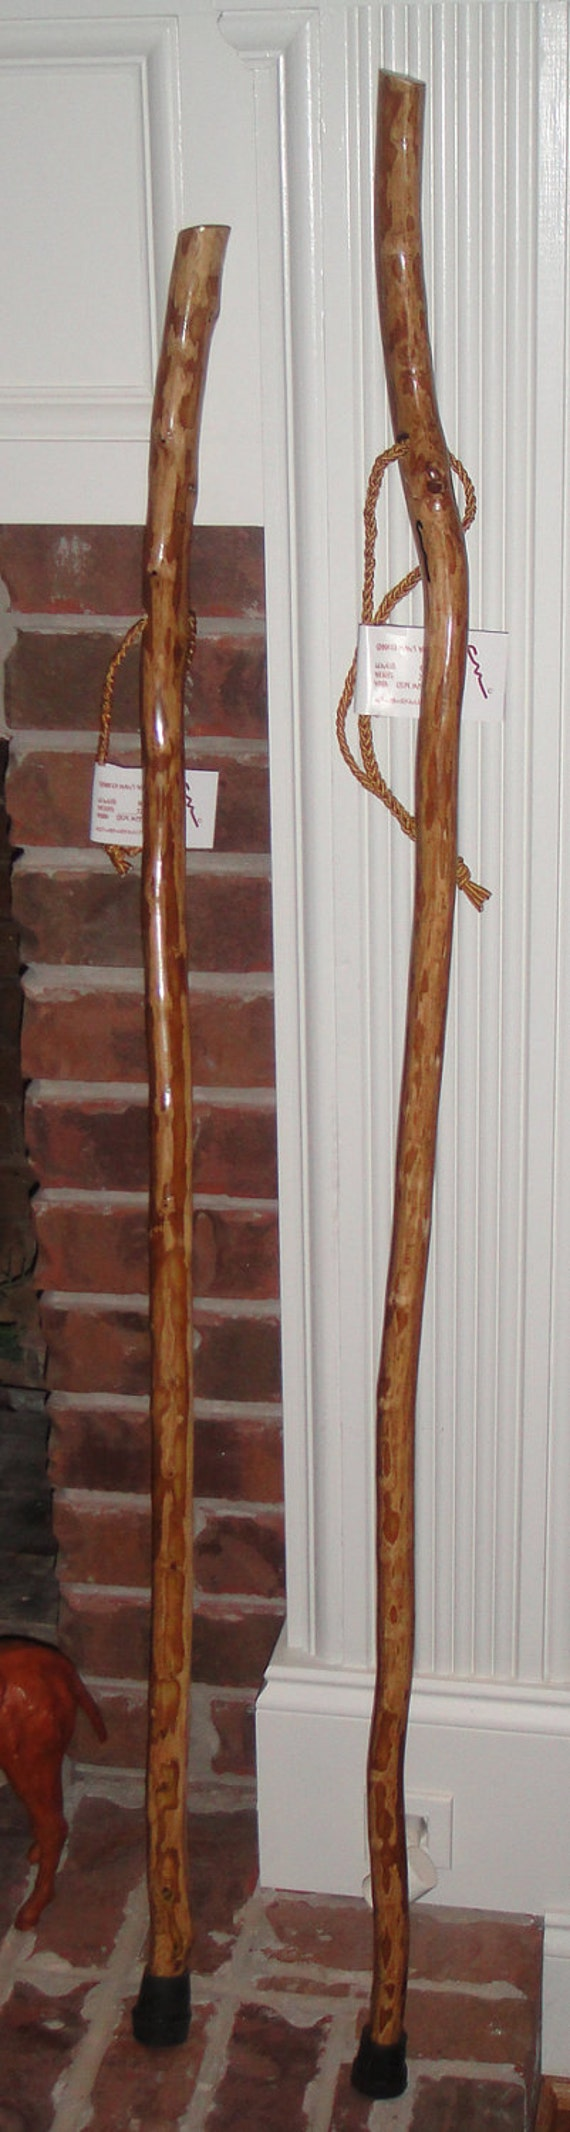 Crooked Man S Crepe Myrtle Walking Stick 49 And 46 Inch